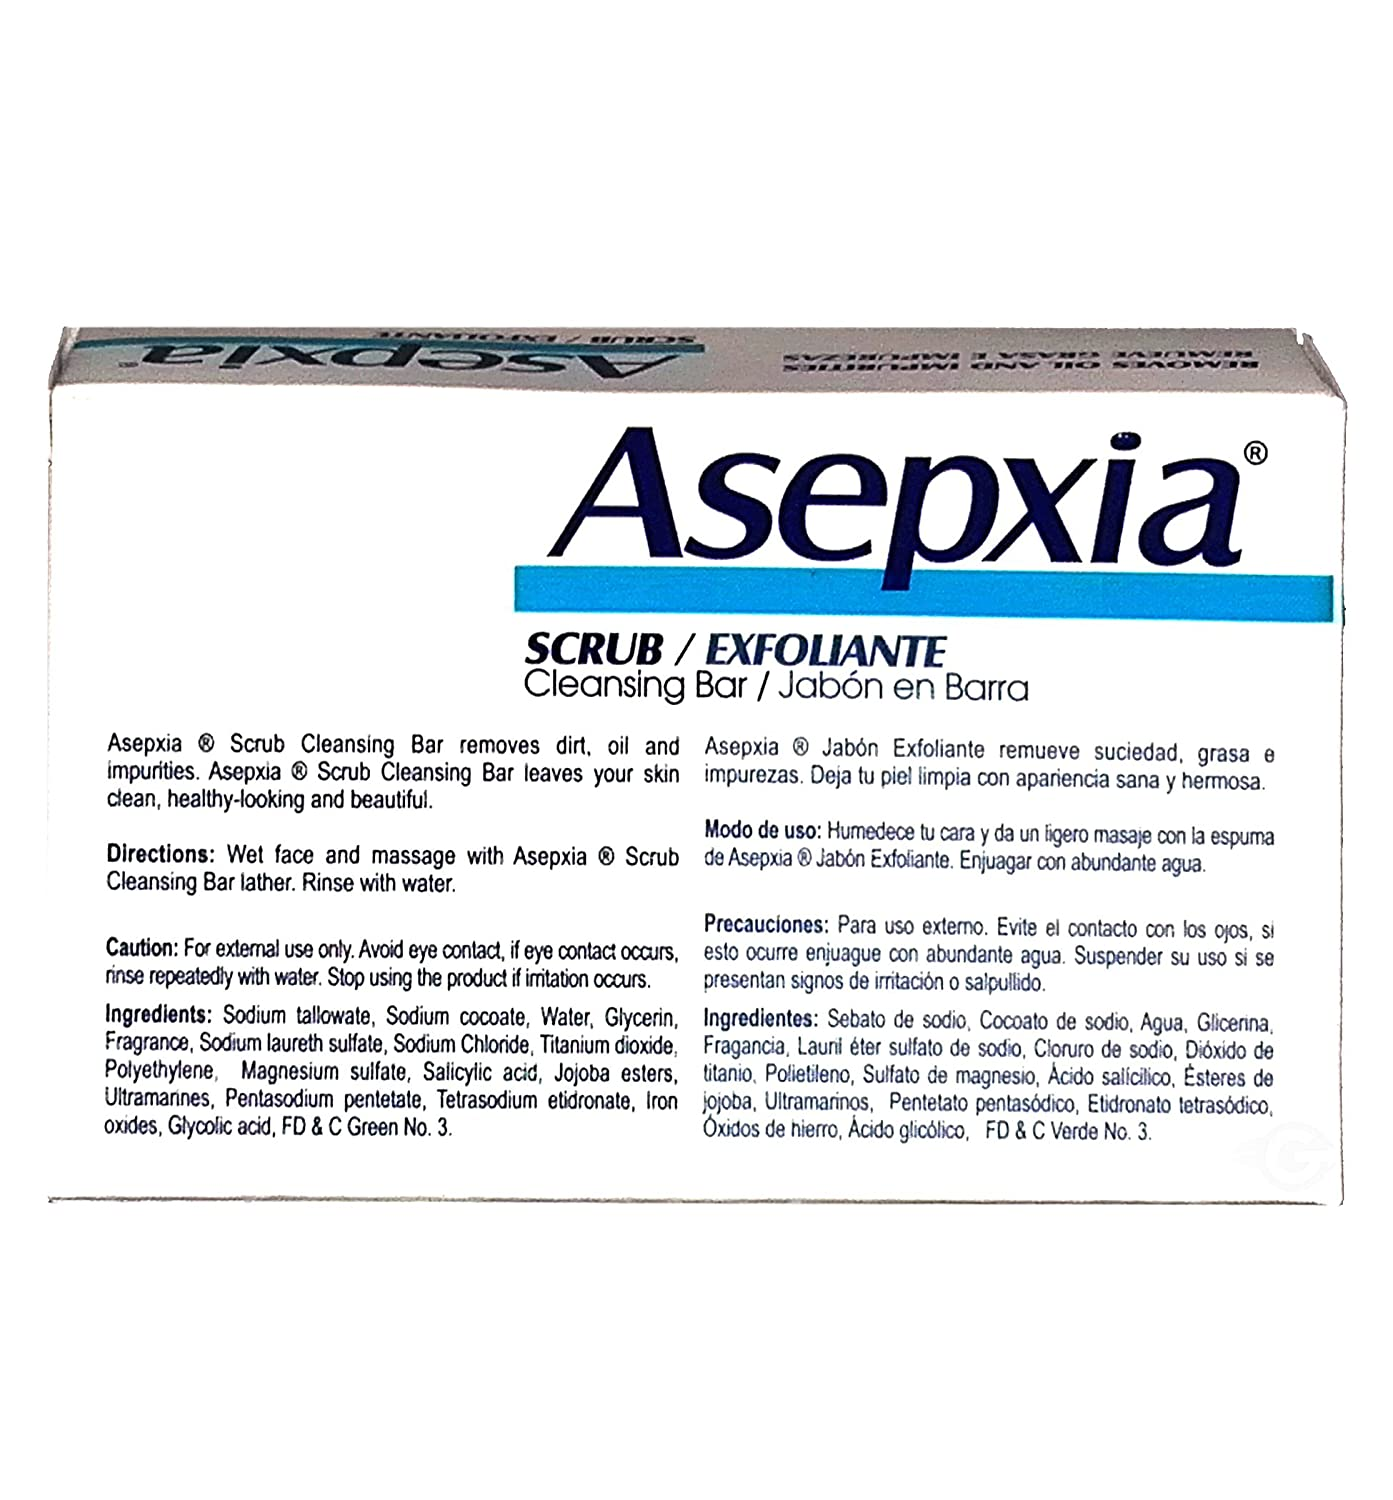 Amazon.com : Asepxia Soap Scrub (blue) 3.52 oz - Jabon Exfoliante Azul (Pack of 12) : Beauty